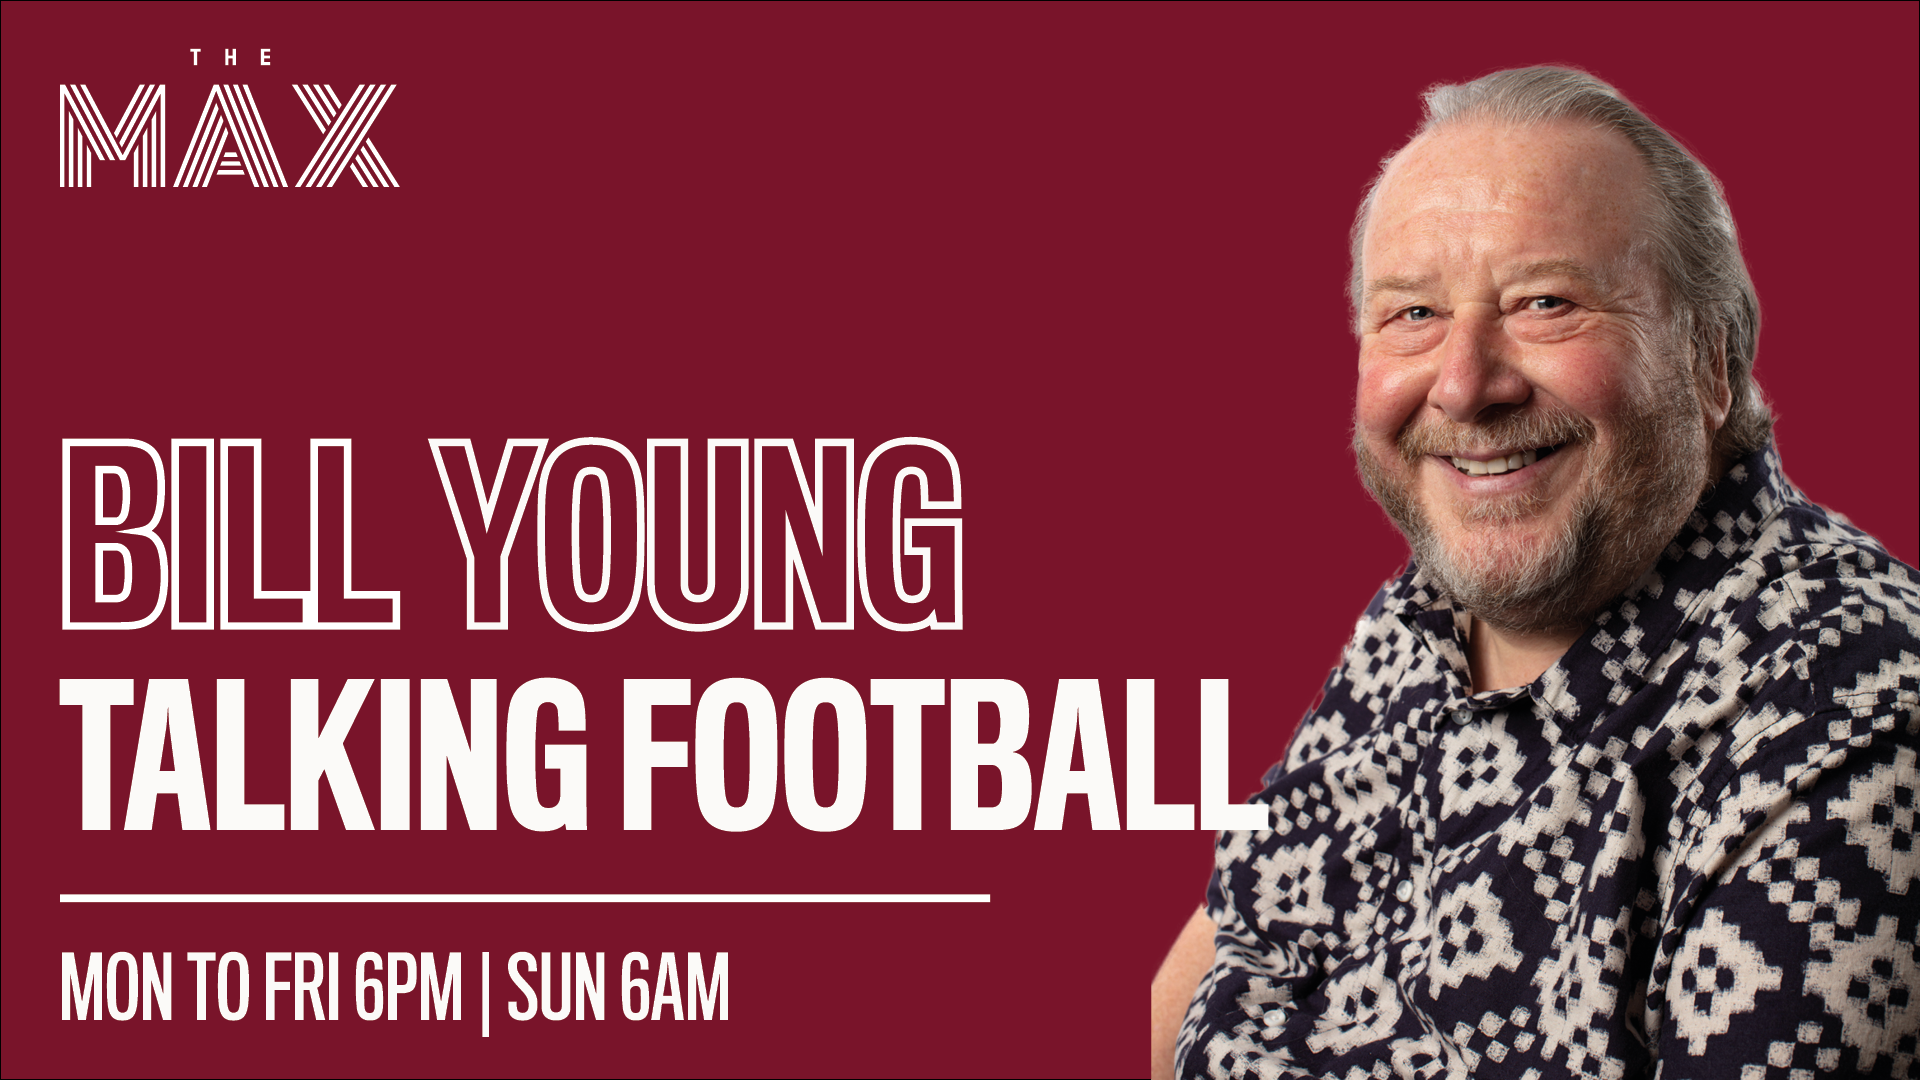 Talking Football with Bill Young - Wednesday 16th of September - Episode 32